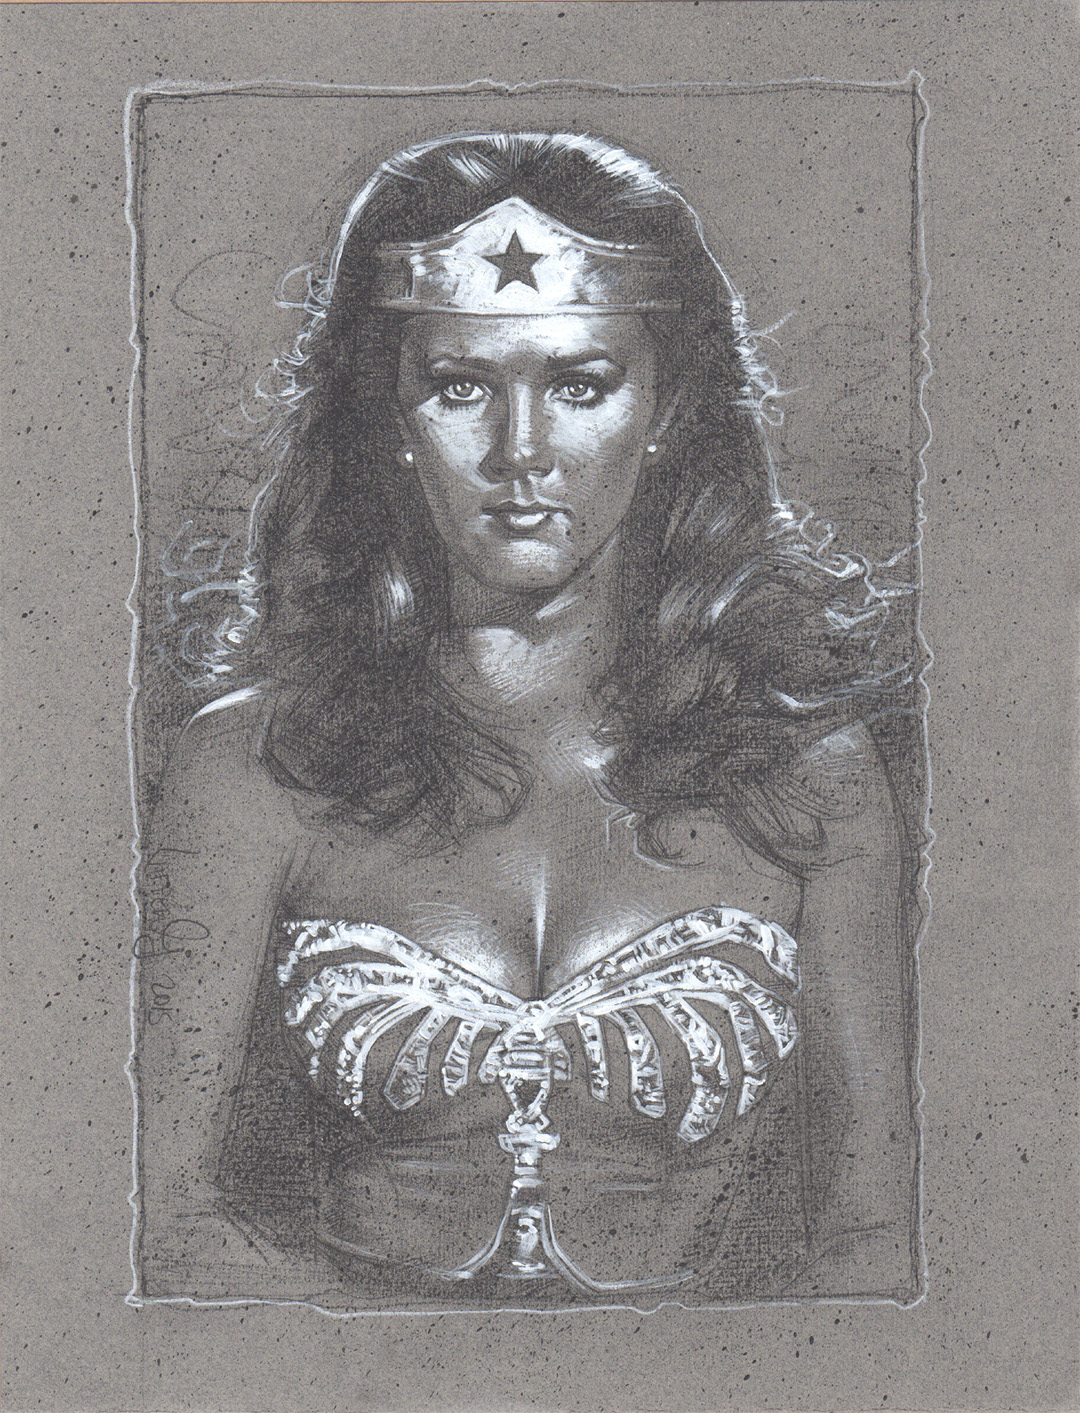 Lynda Carter, Wonder Woman, Artwork is Copyright © 2015 Jeff Lafferty